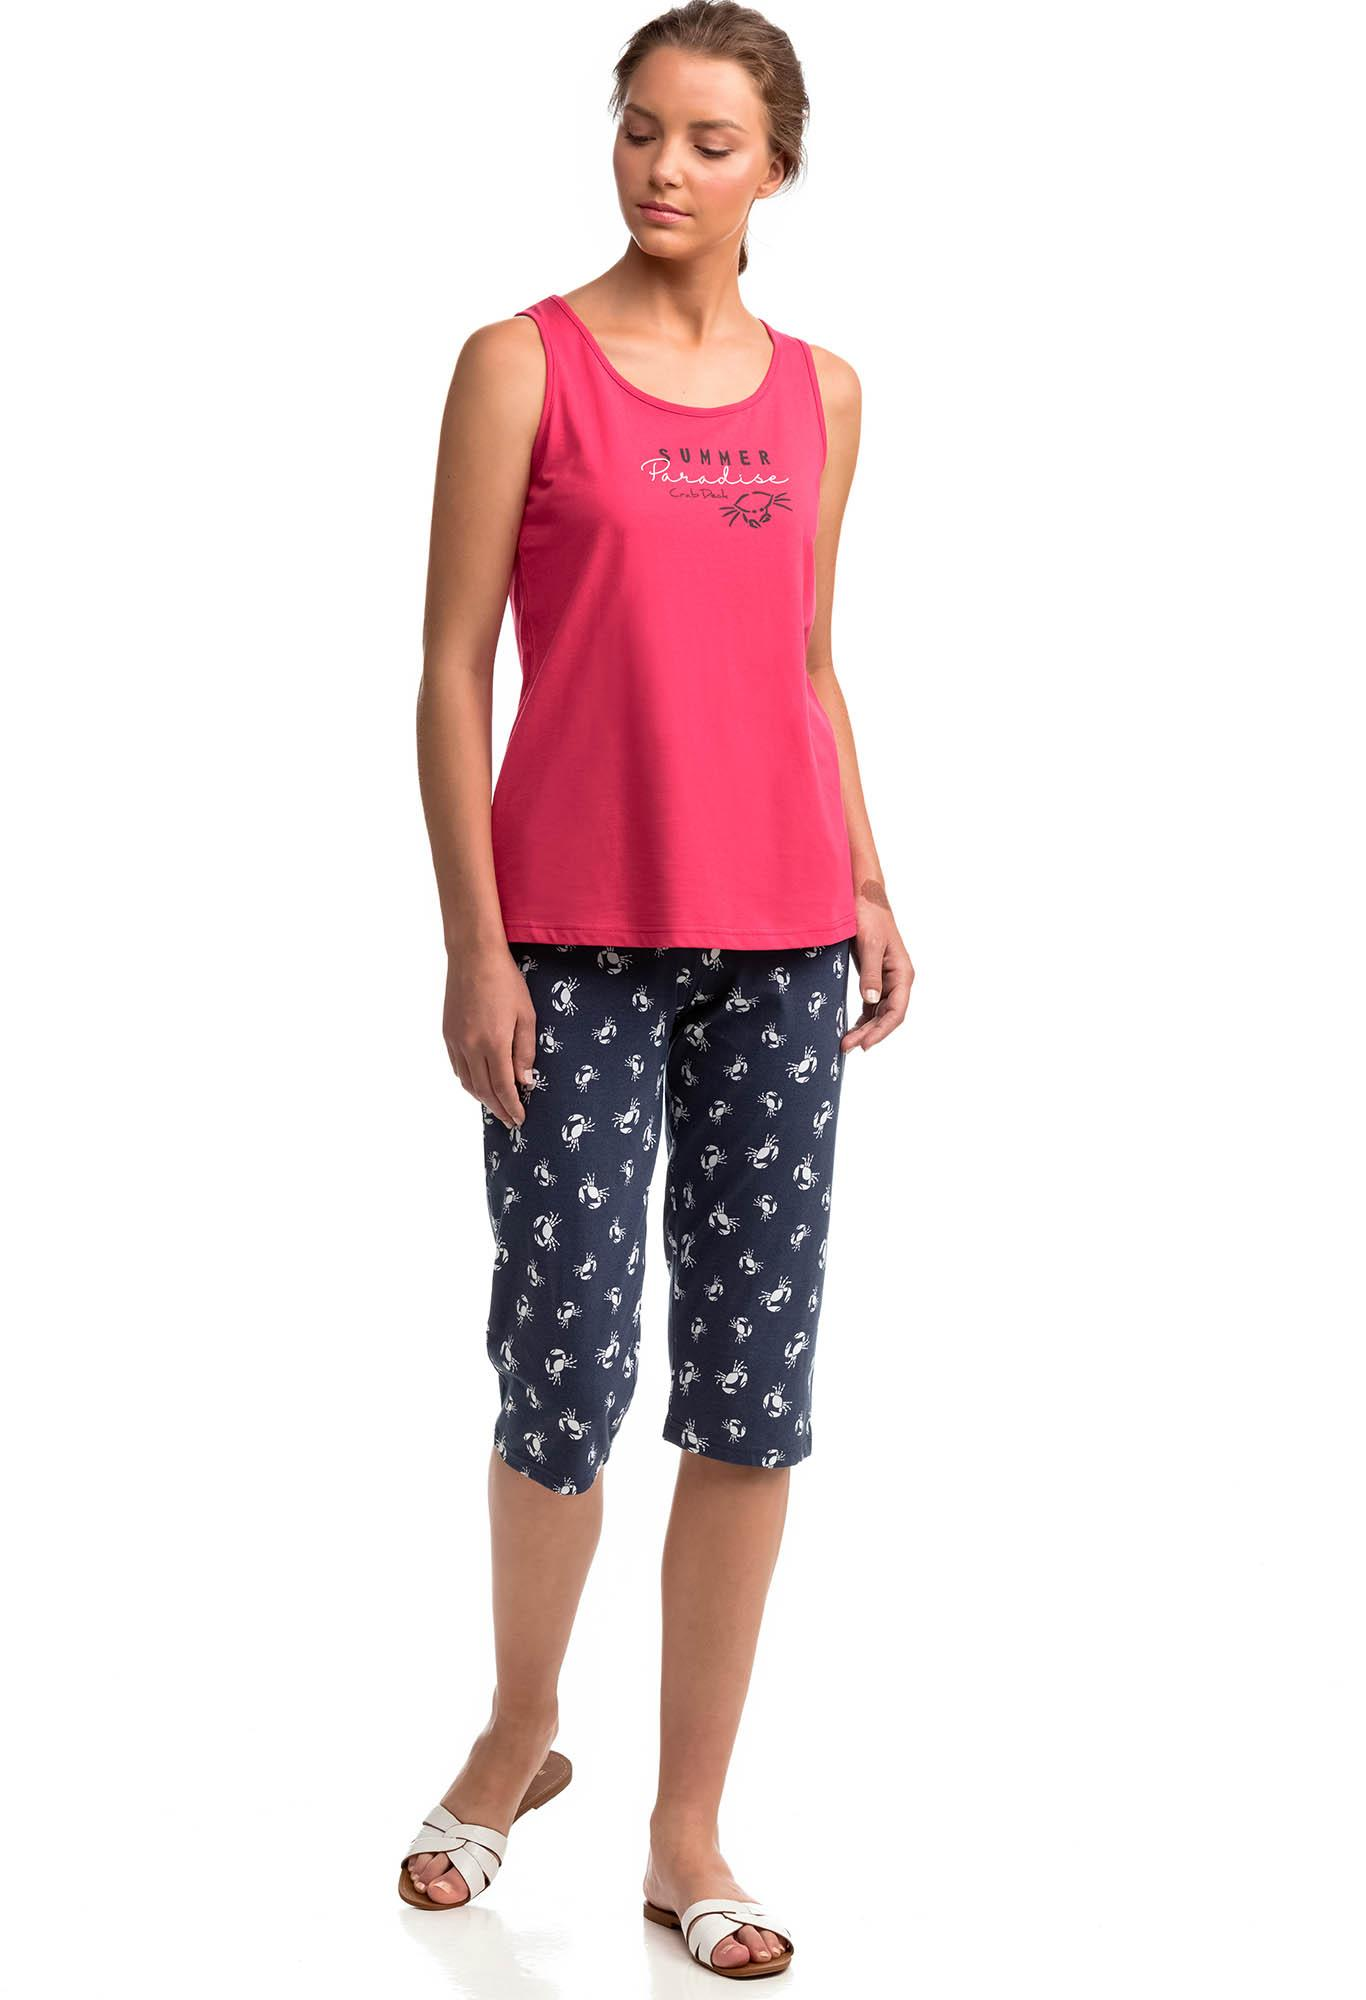 Women's Sleeveless Pyjamas